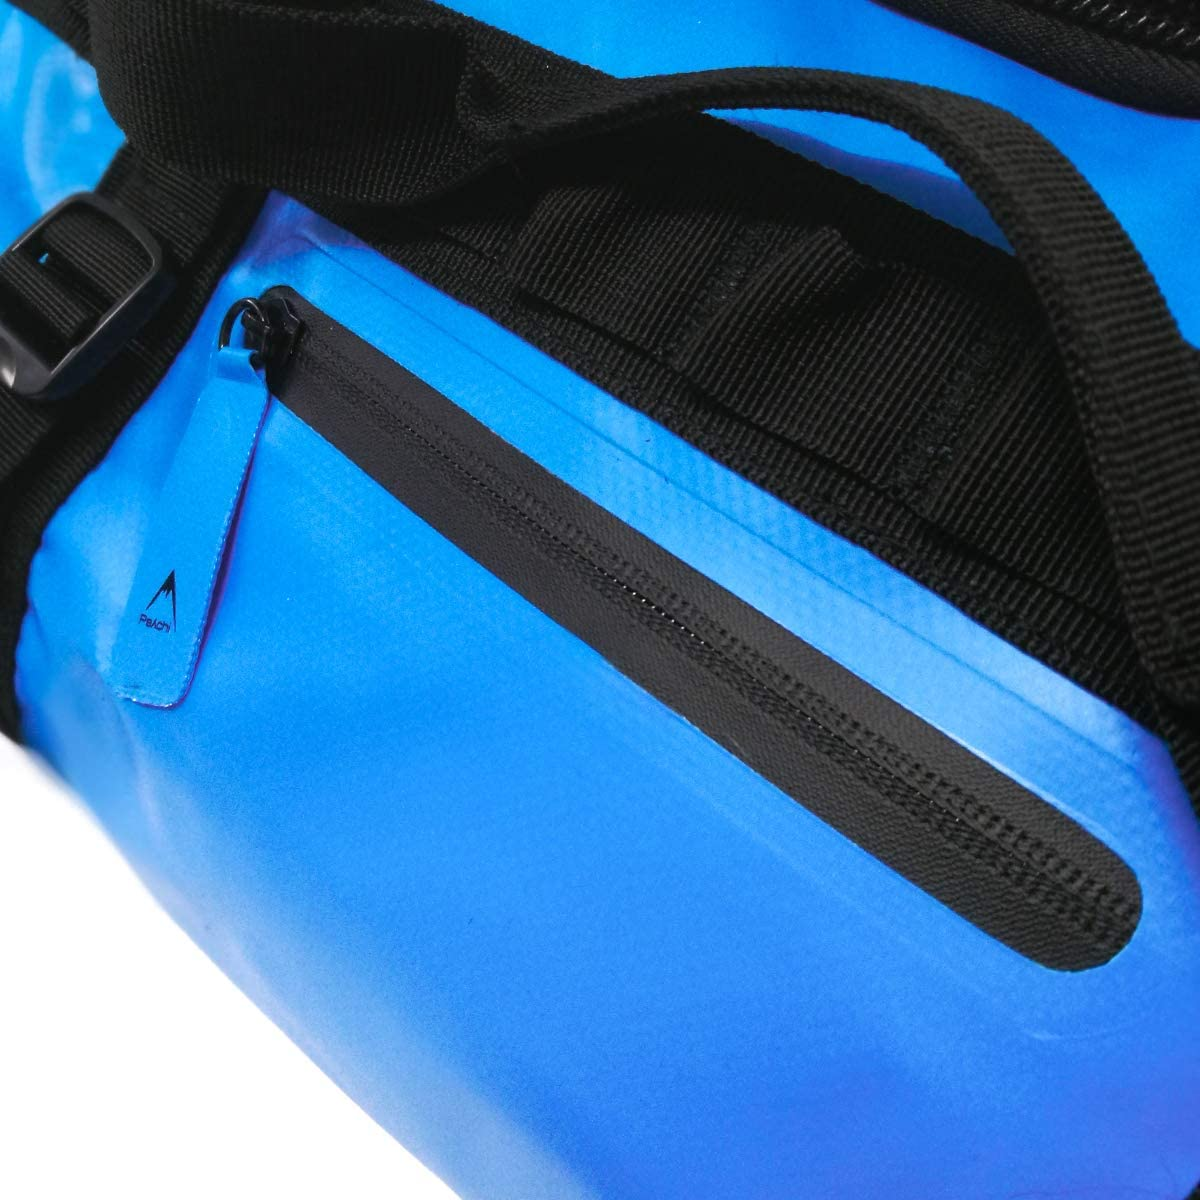 Psychi Voyager Outdoor Luggage Duffle Bag Backpack Holdall For Gym Climbing Sports Travel Crossfit